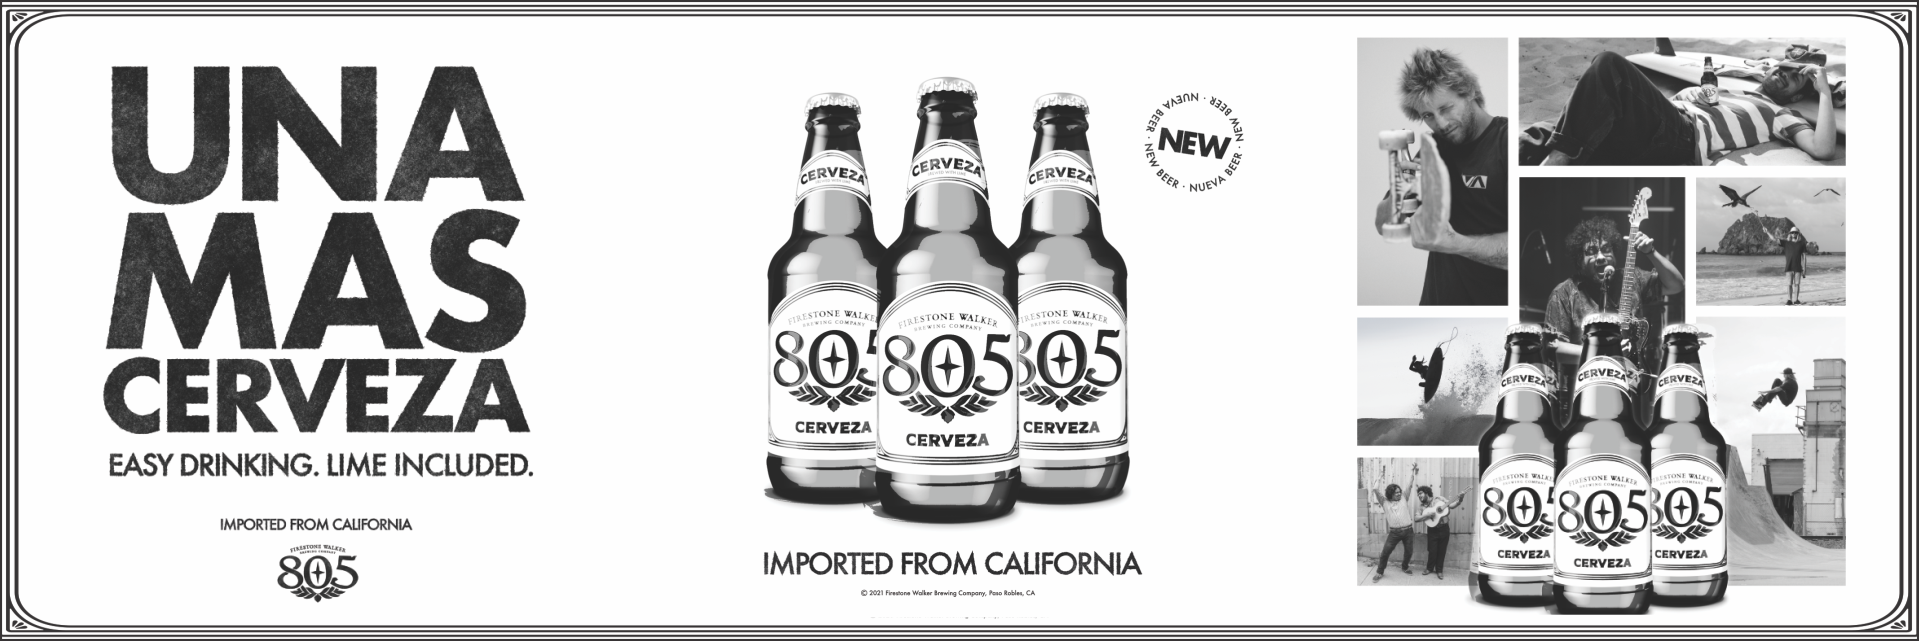 cover image of firestone walker 805 cerveza including the slogan una mas cerveza and images of firestone walker 805 cerveza bottles